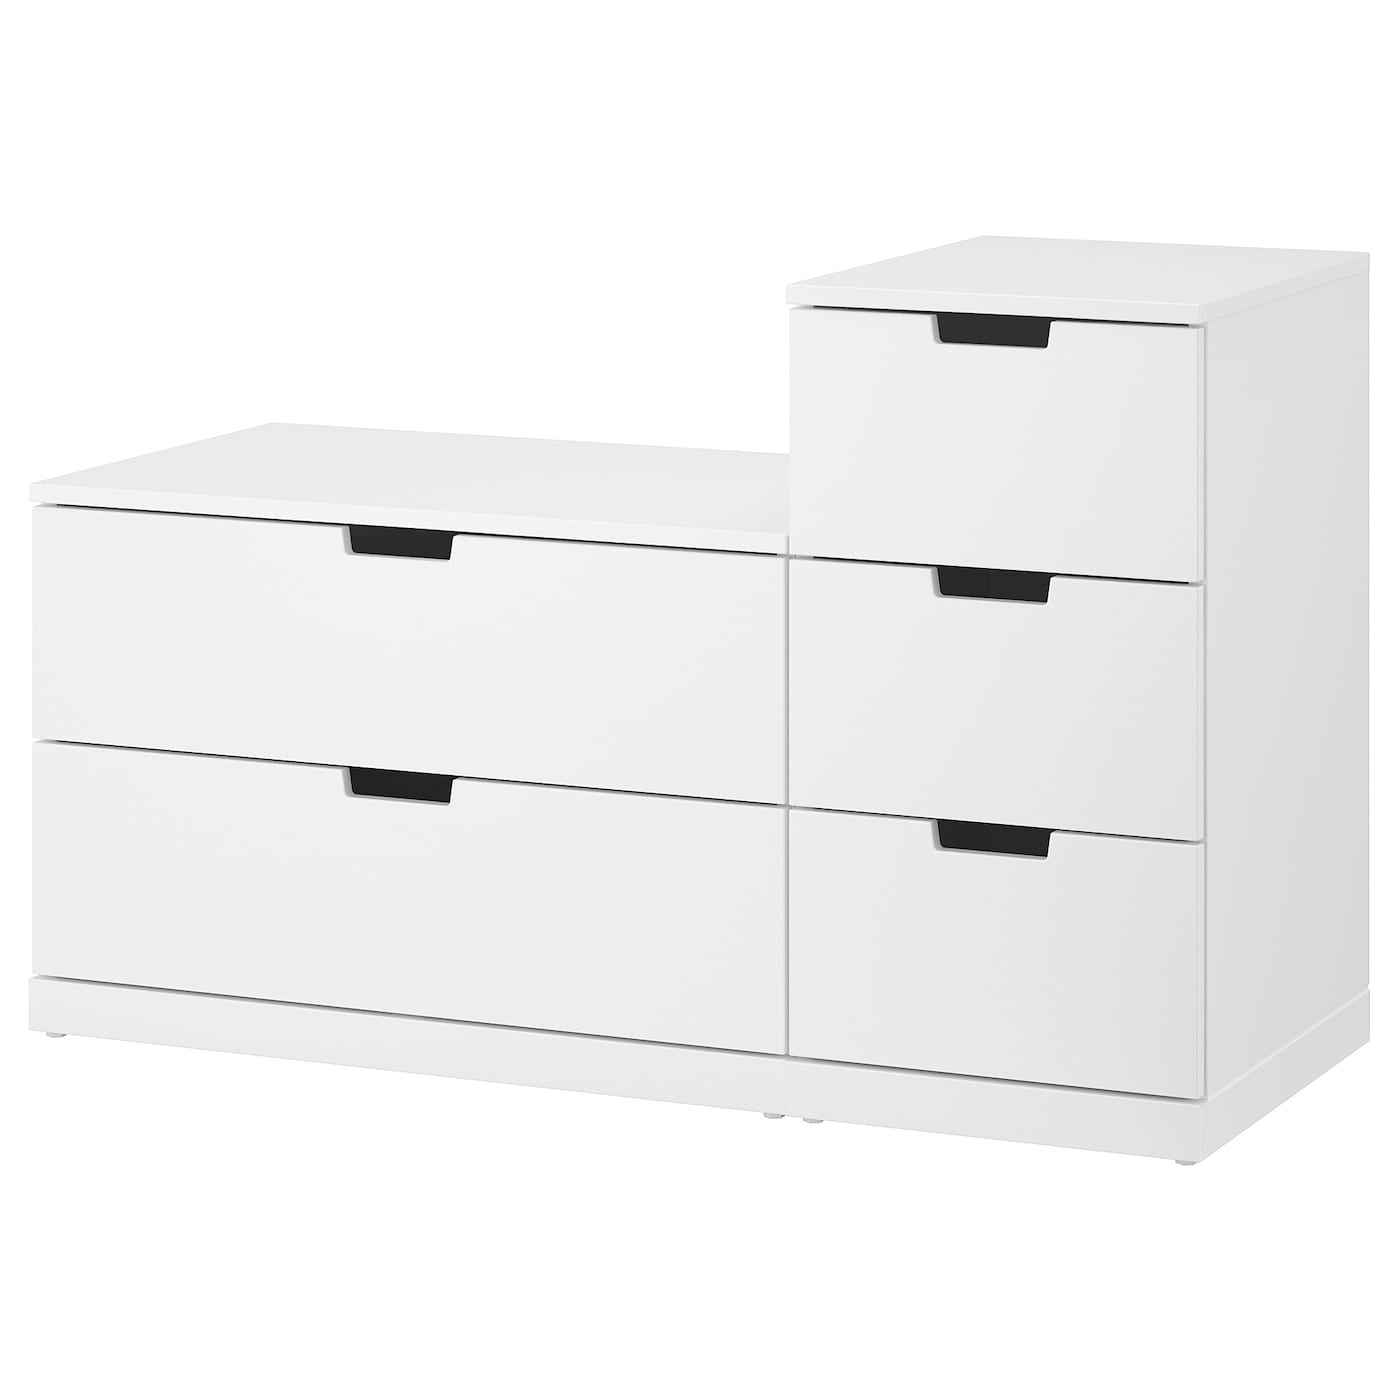 IKEA NORDLI chest of 5 drawers